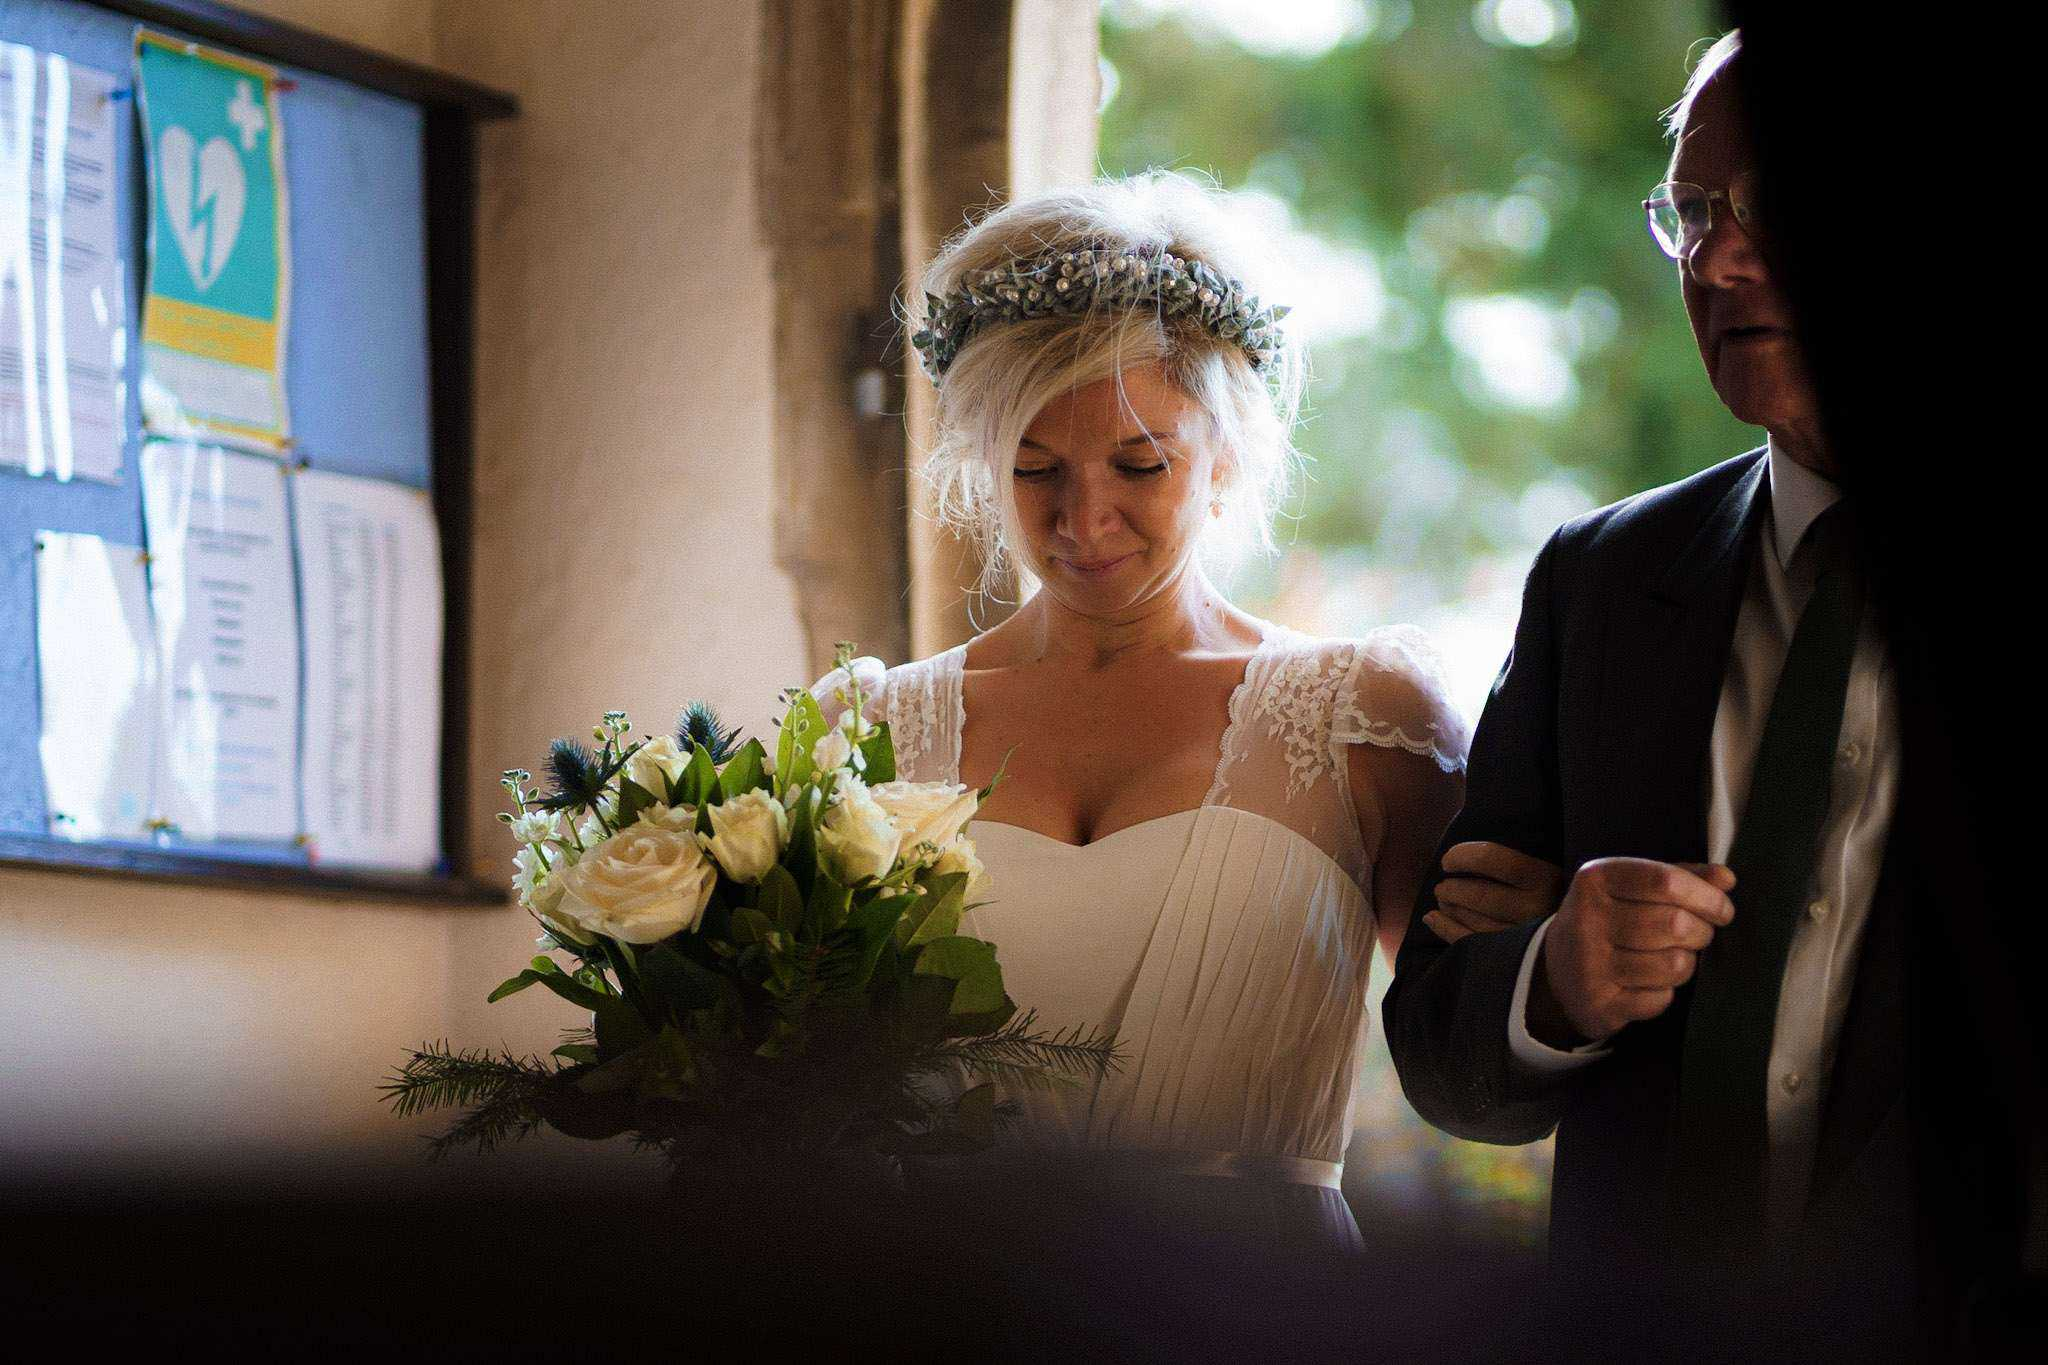 A bride enters the church with her father